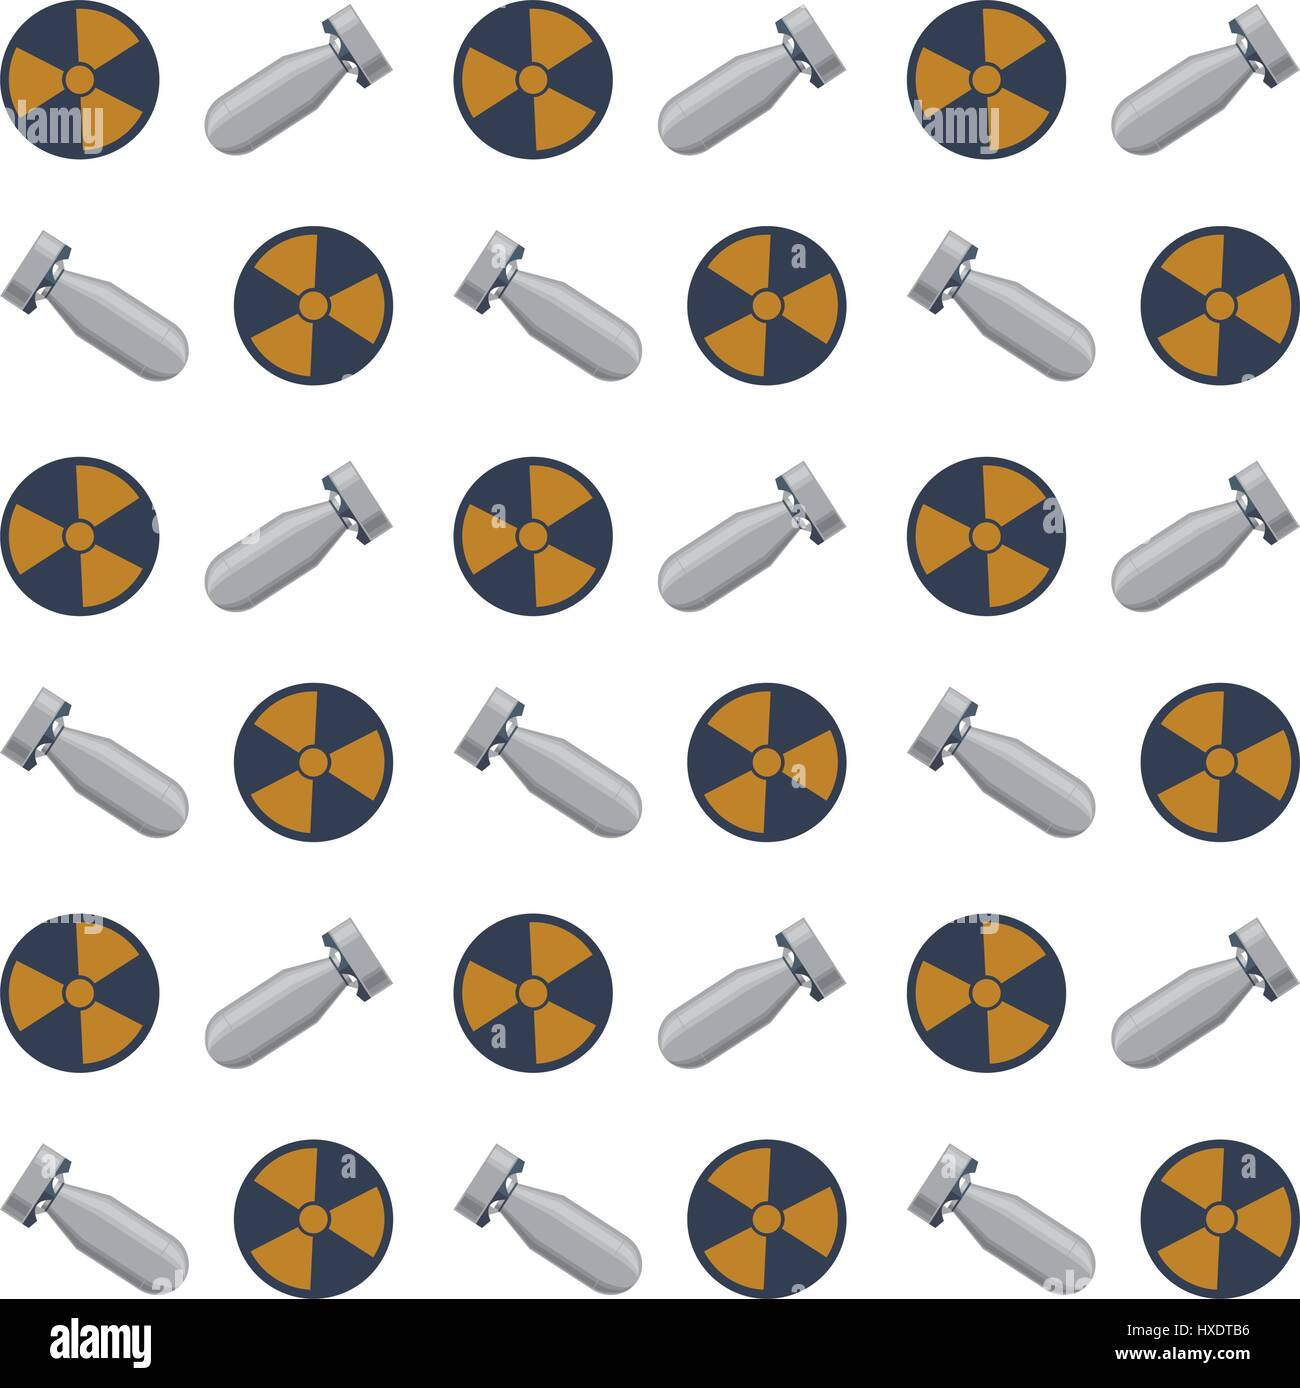 Nuclear bomb weapon - Stock Image